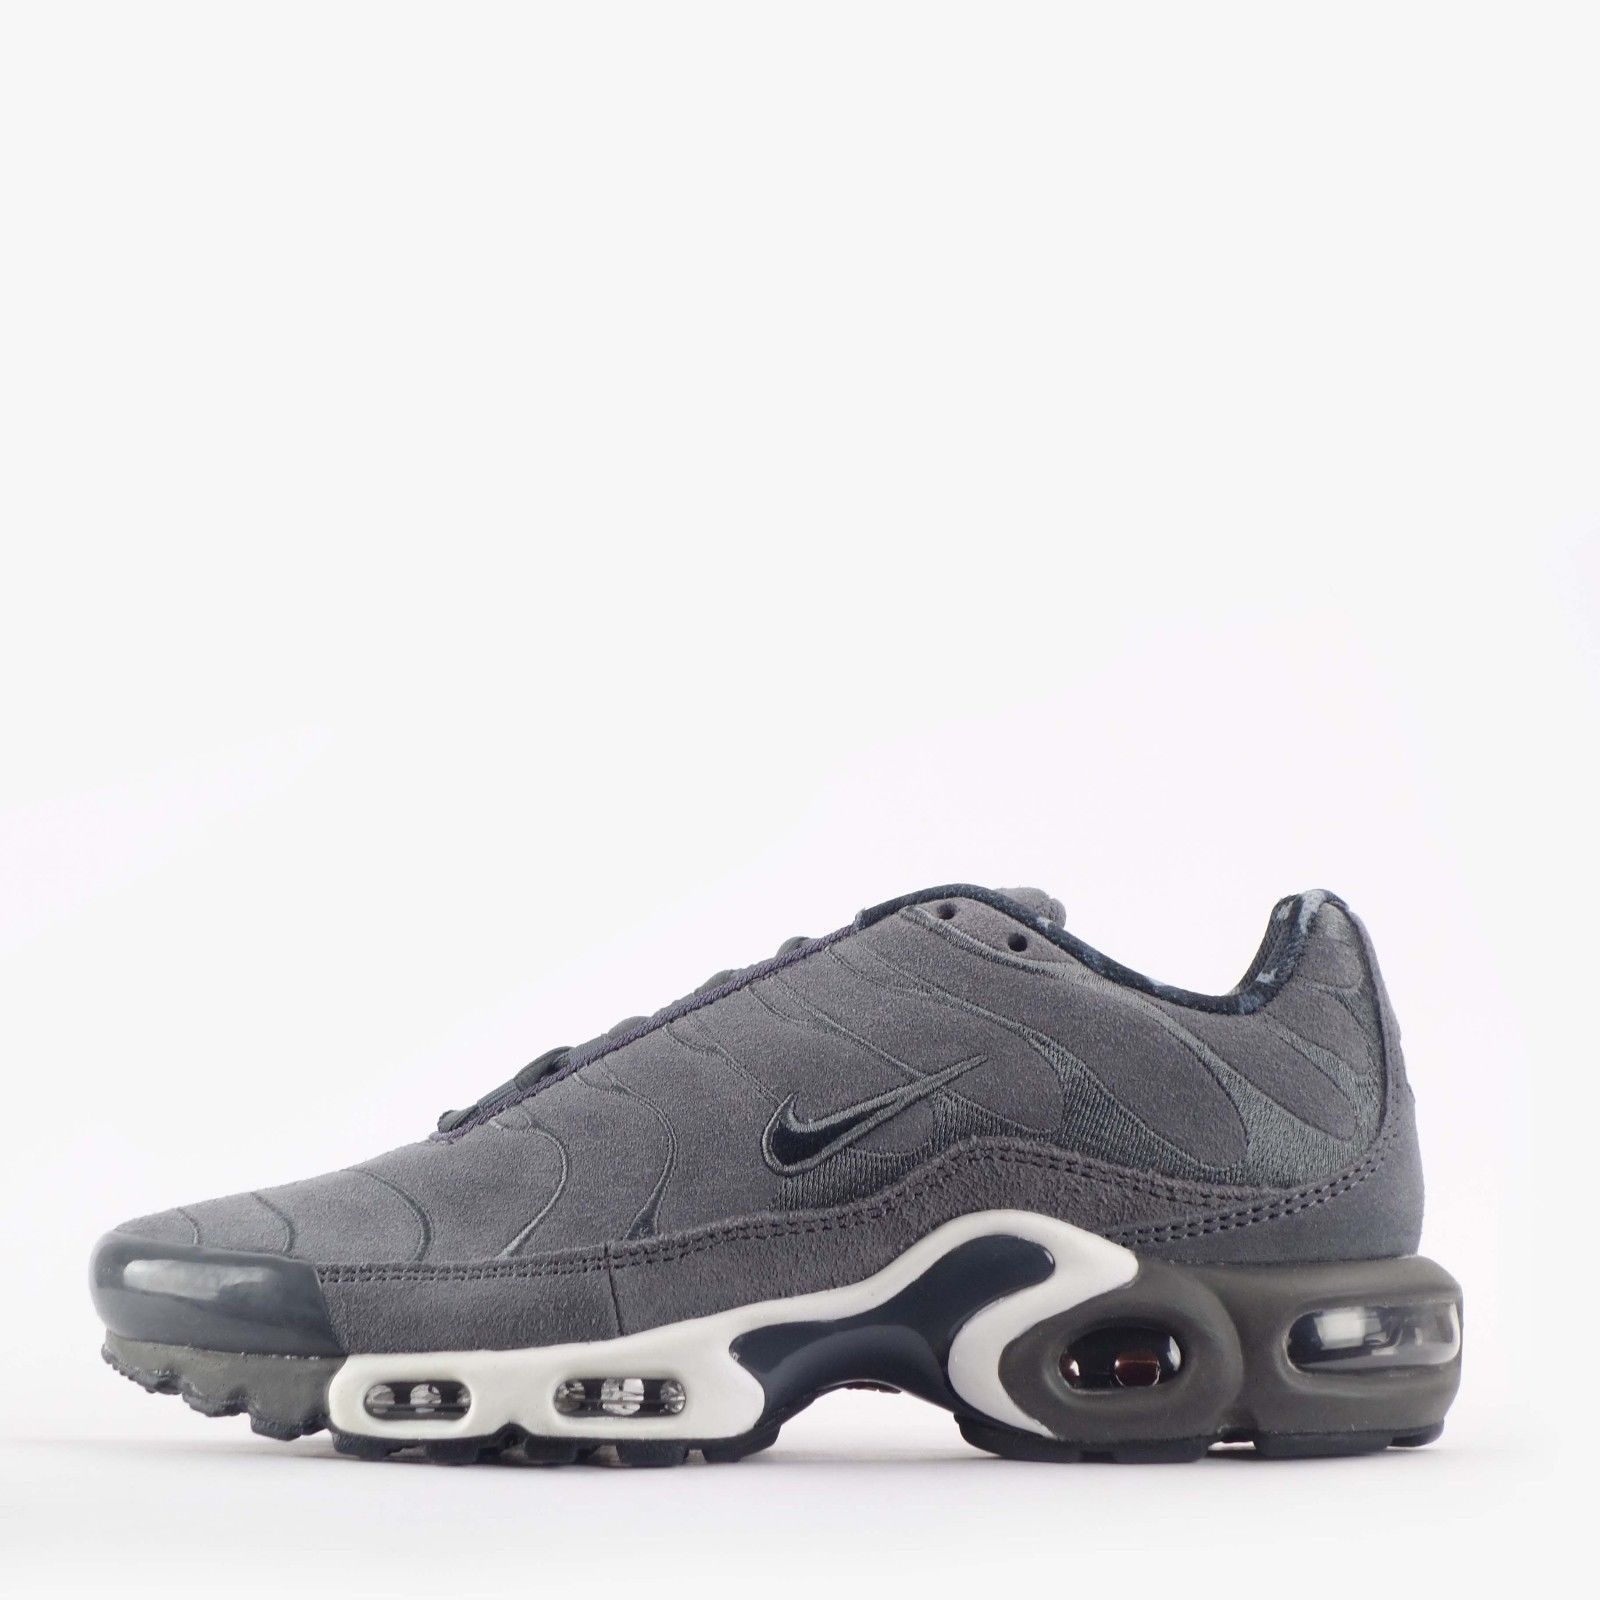 Nike Air Max Plus Premium Tuned TN Suede Mens Shoes In Dark Grey in  Clothes a8a04b94e